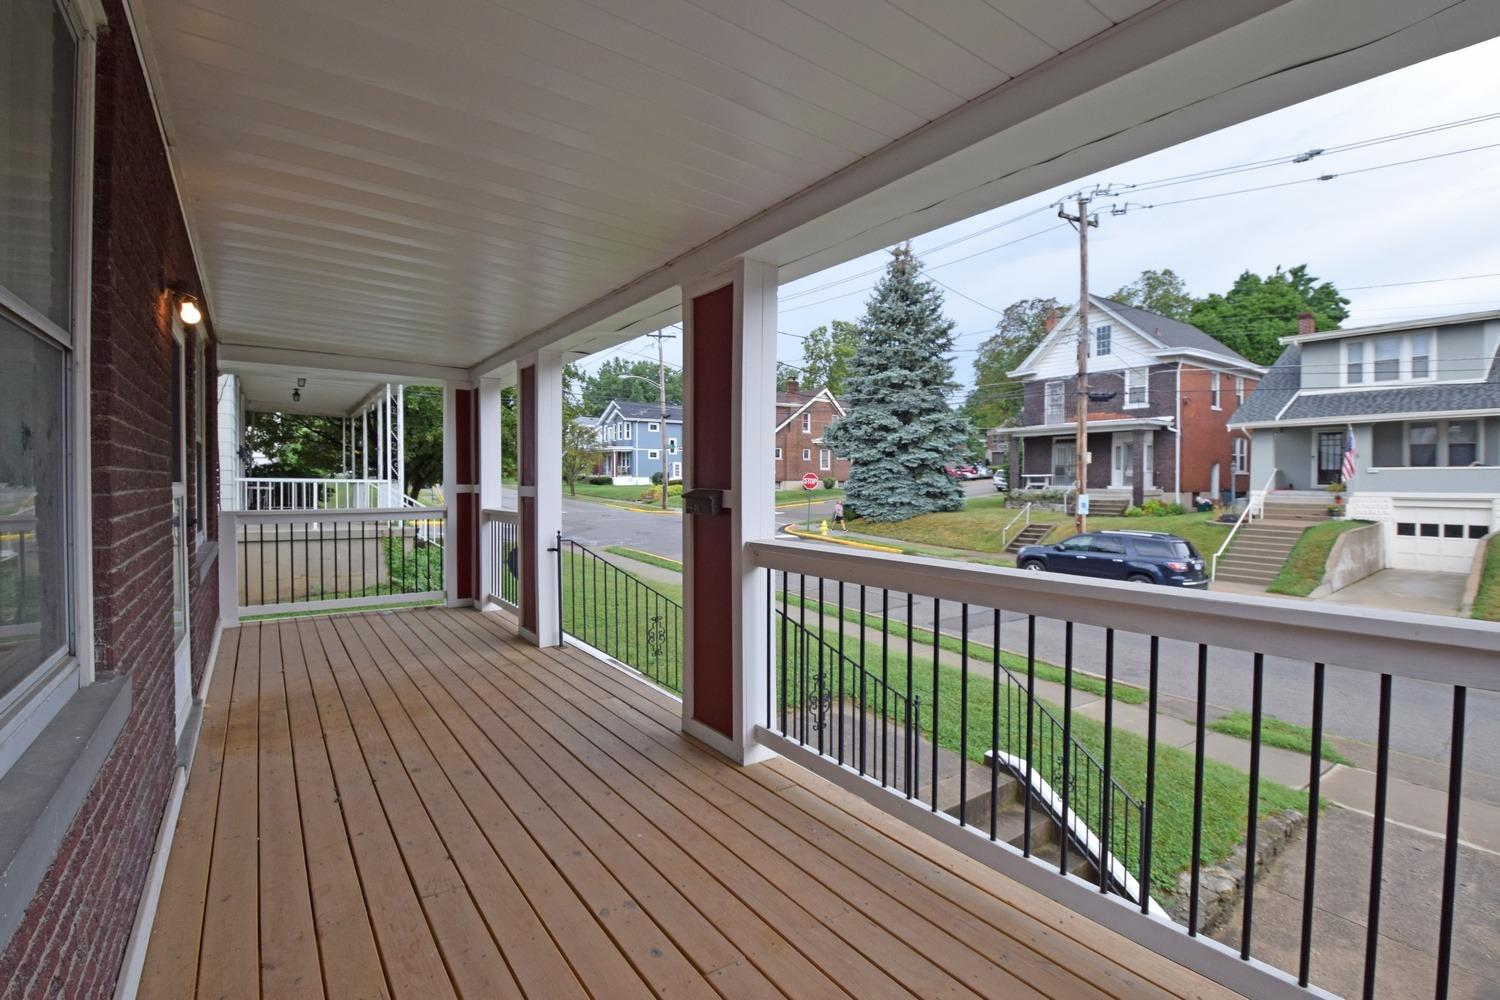 Photo 3 for 4404 Greenlee Avenue St. Bernard, OH 45217